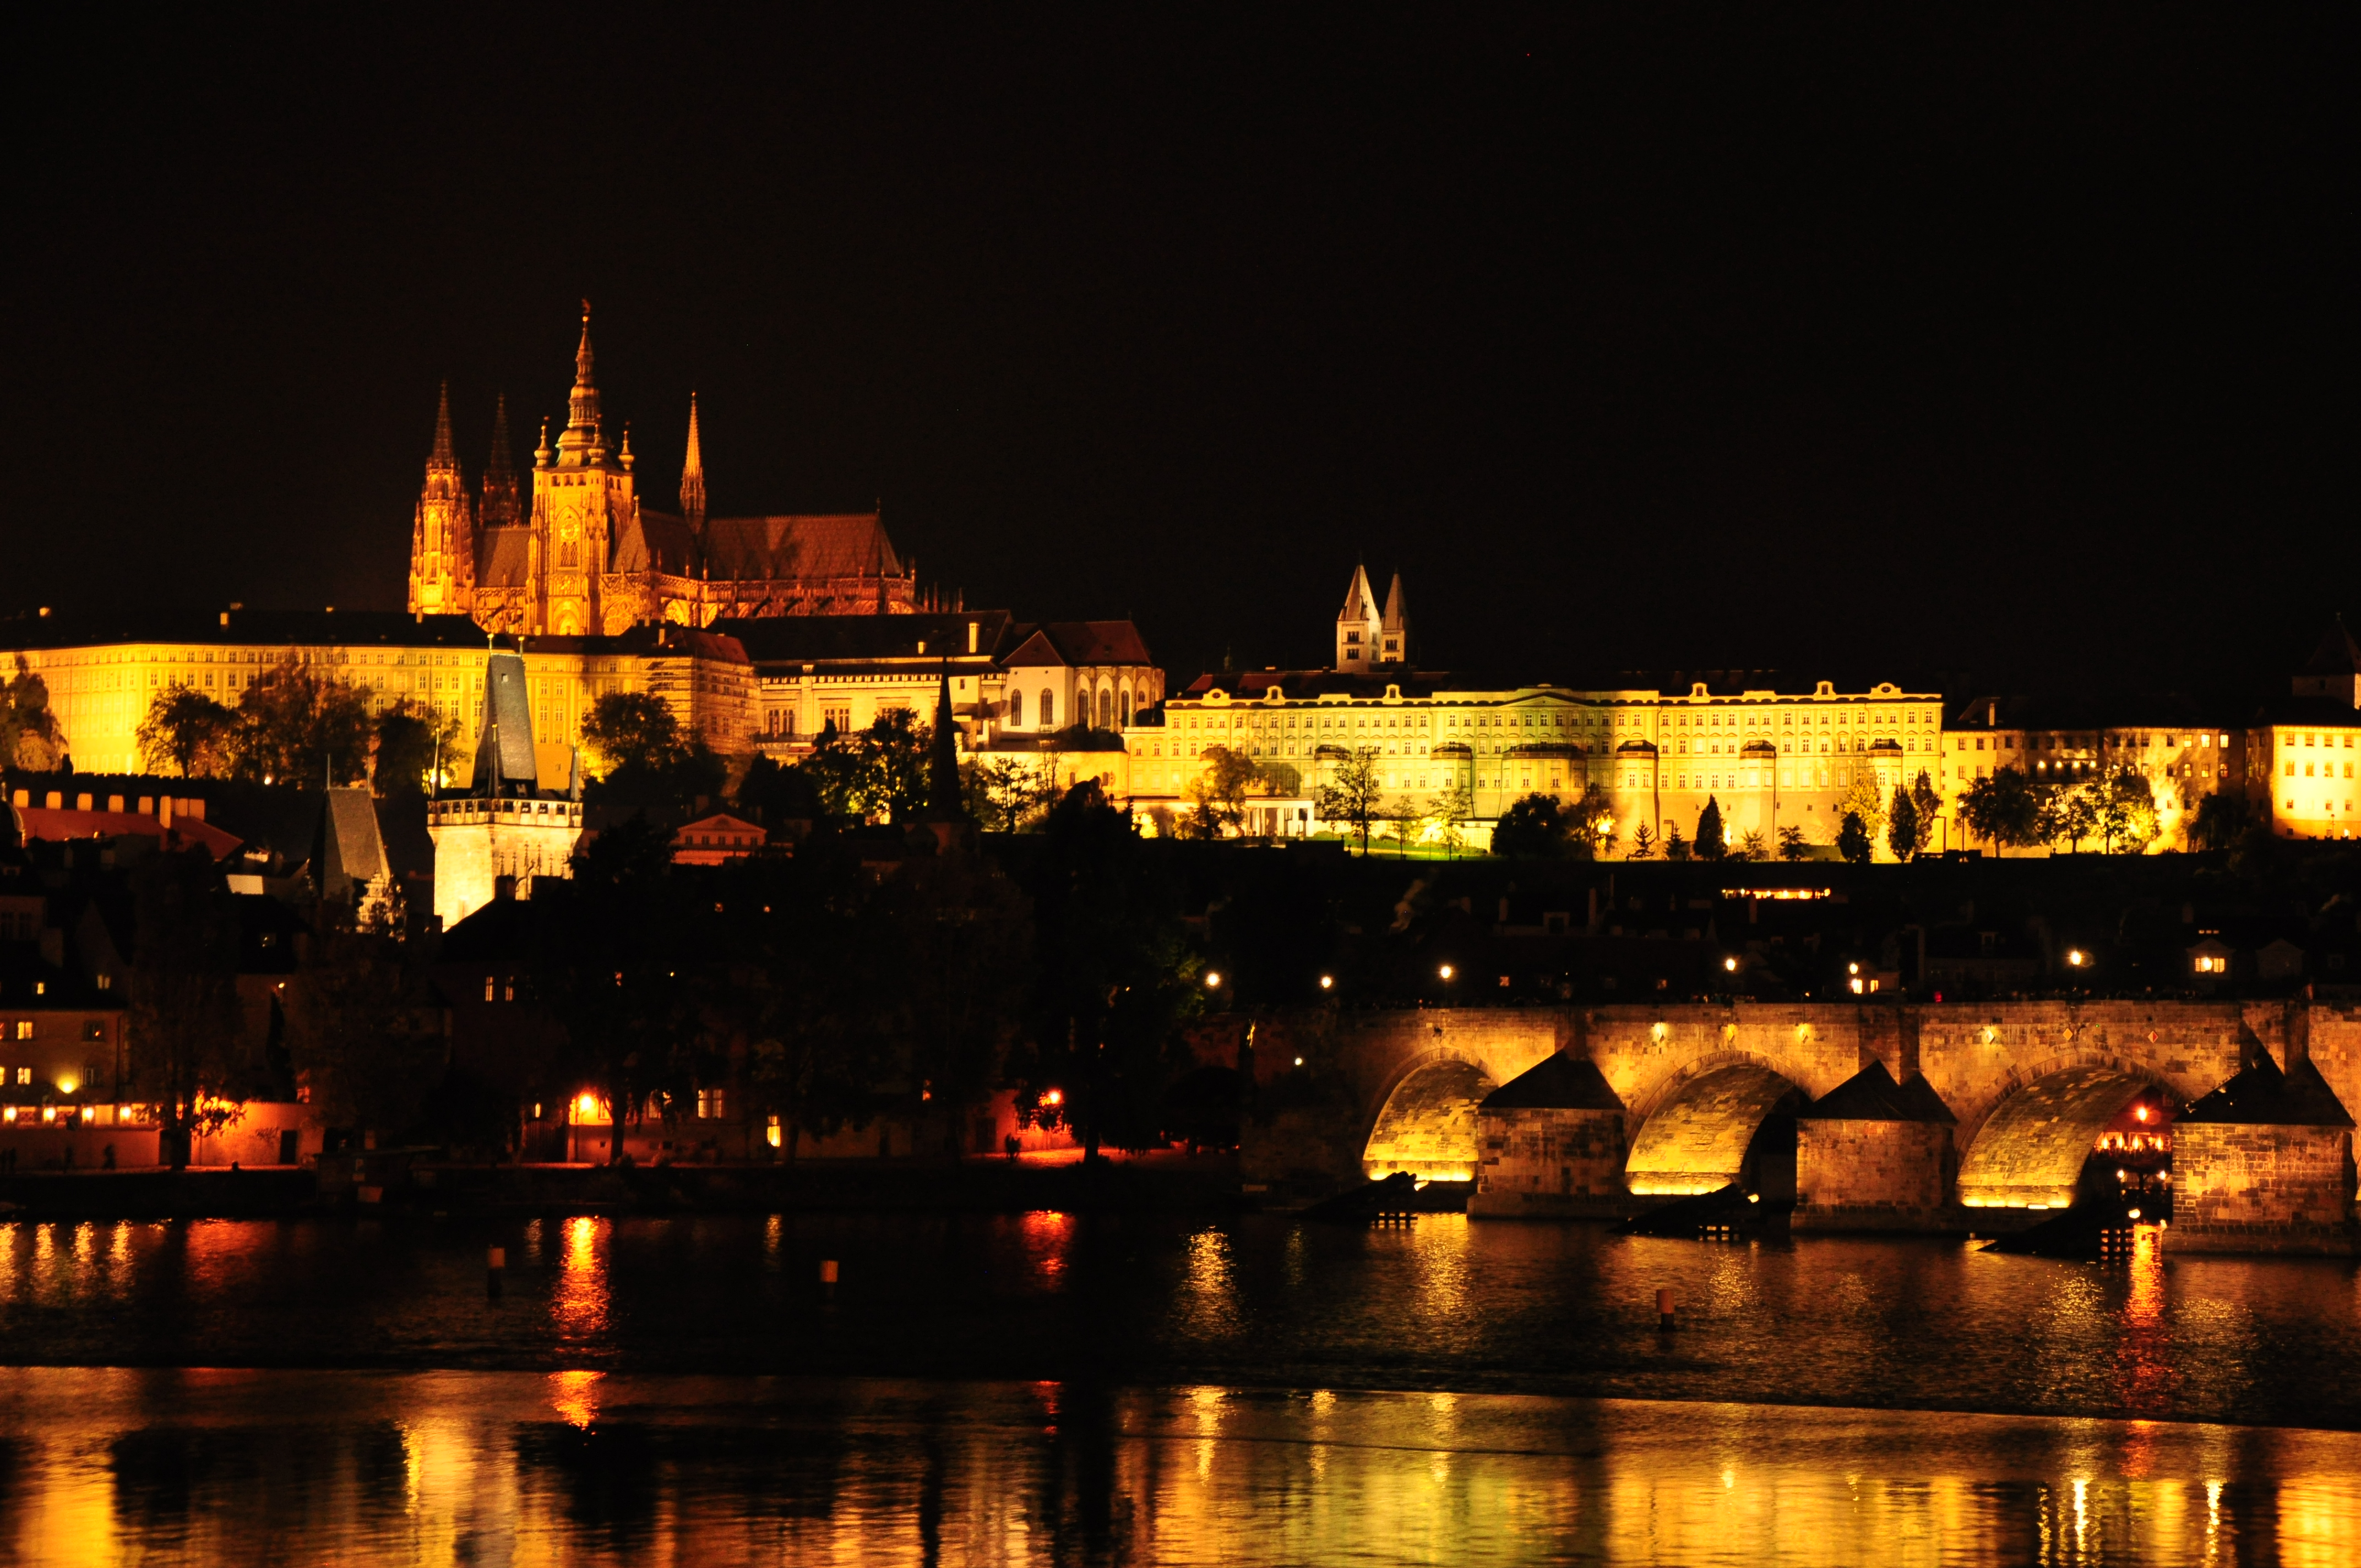 Hd Wallpaper Dimensions Prague Castle At Night Cc0 Photo